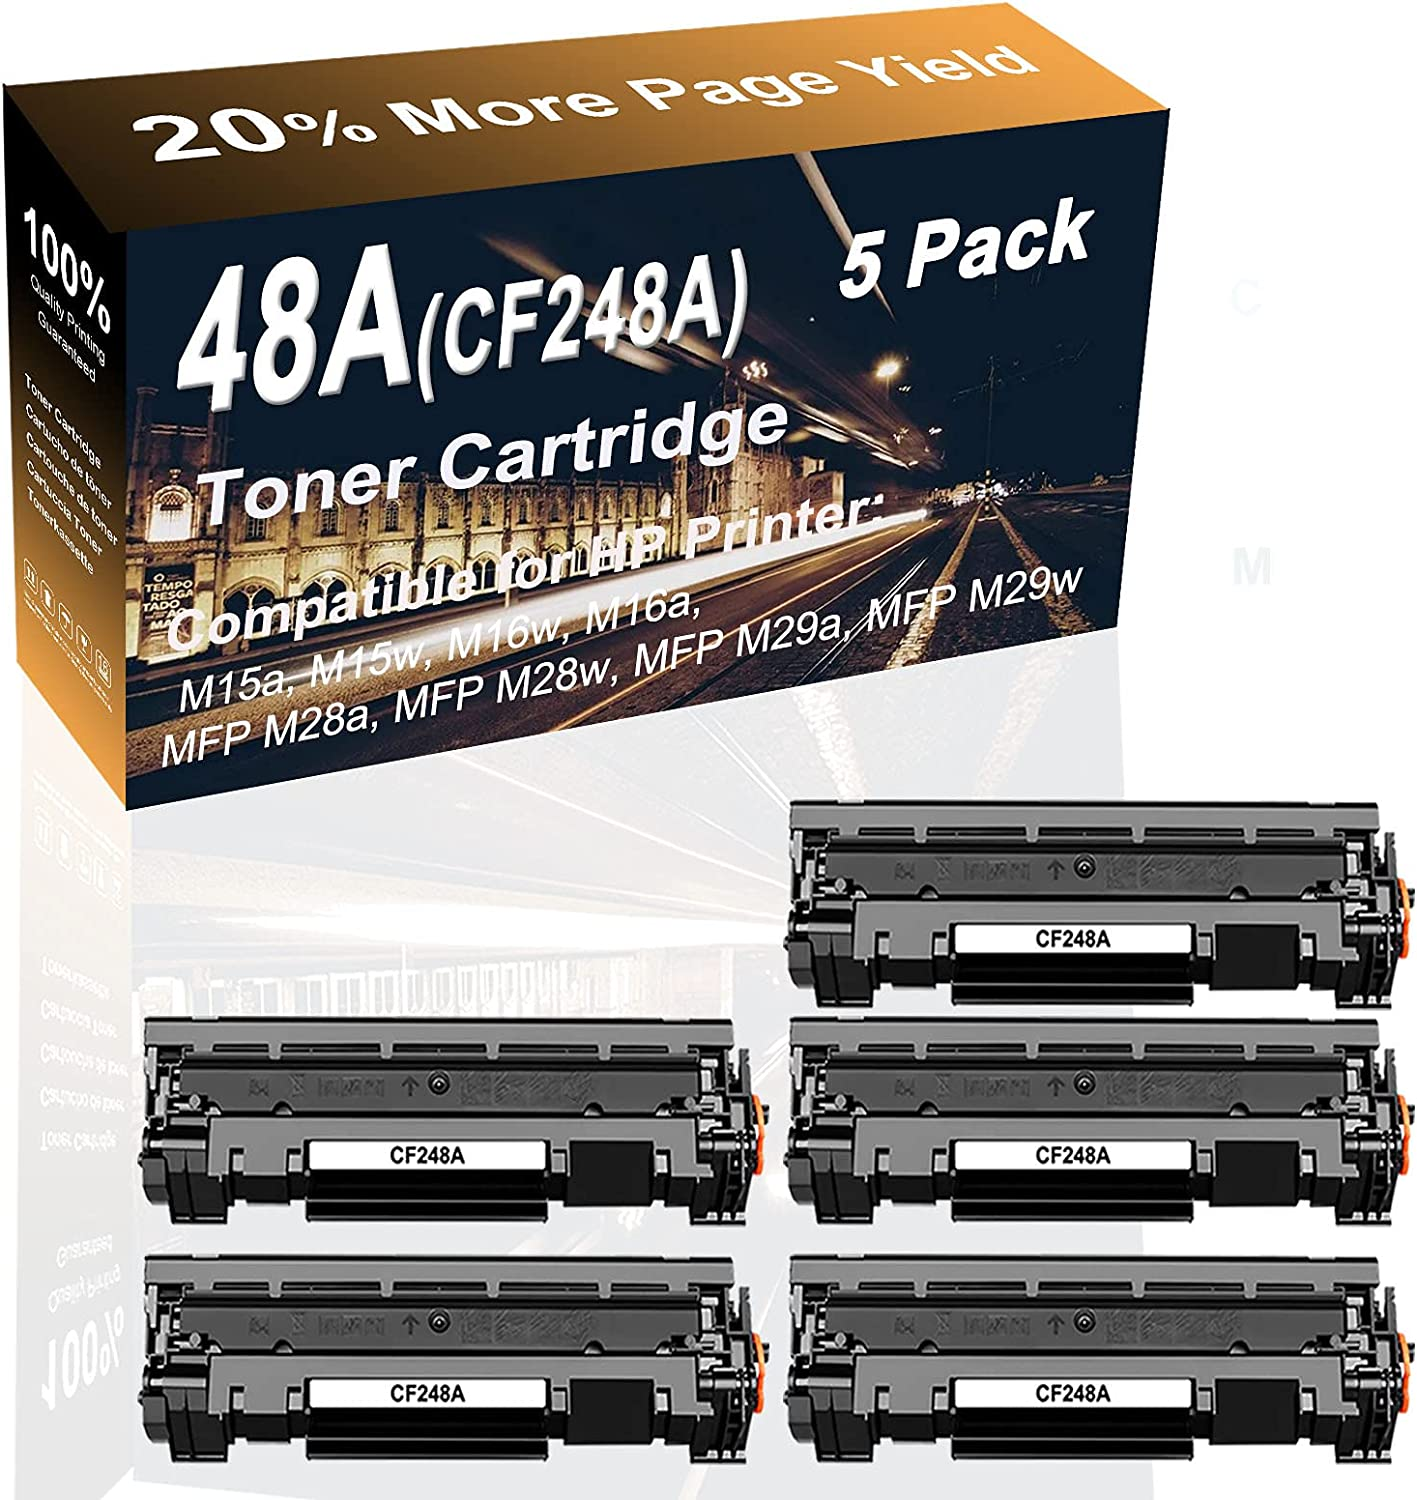 5-Pack (Black) Compatible High Yield 48A (CF248A) Printer Toner Cartridge use for HP MFP M29a, MFP M29w Printer